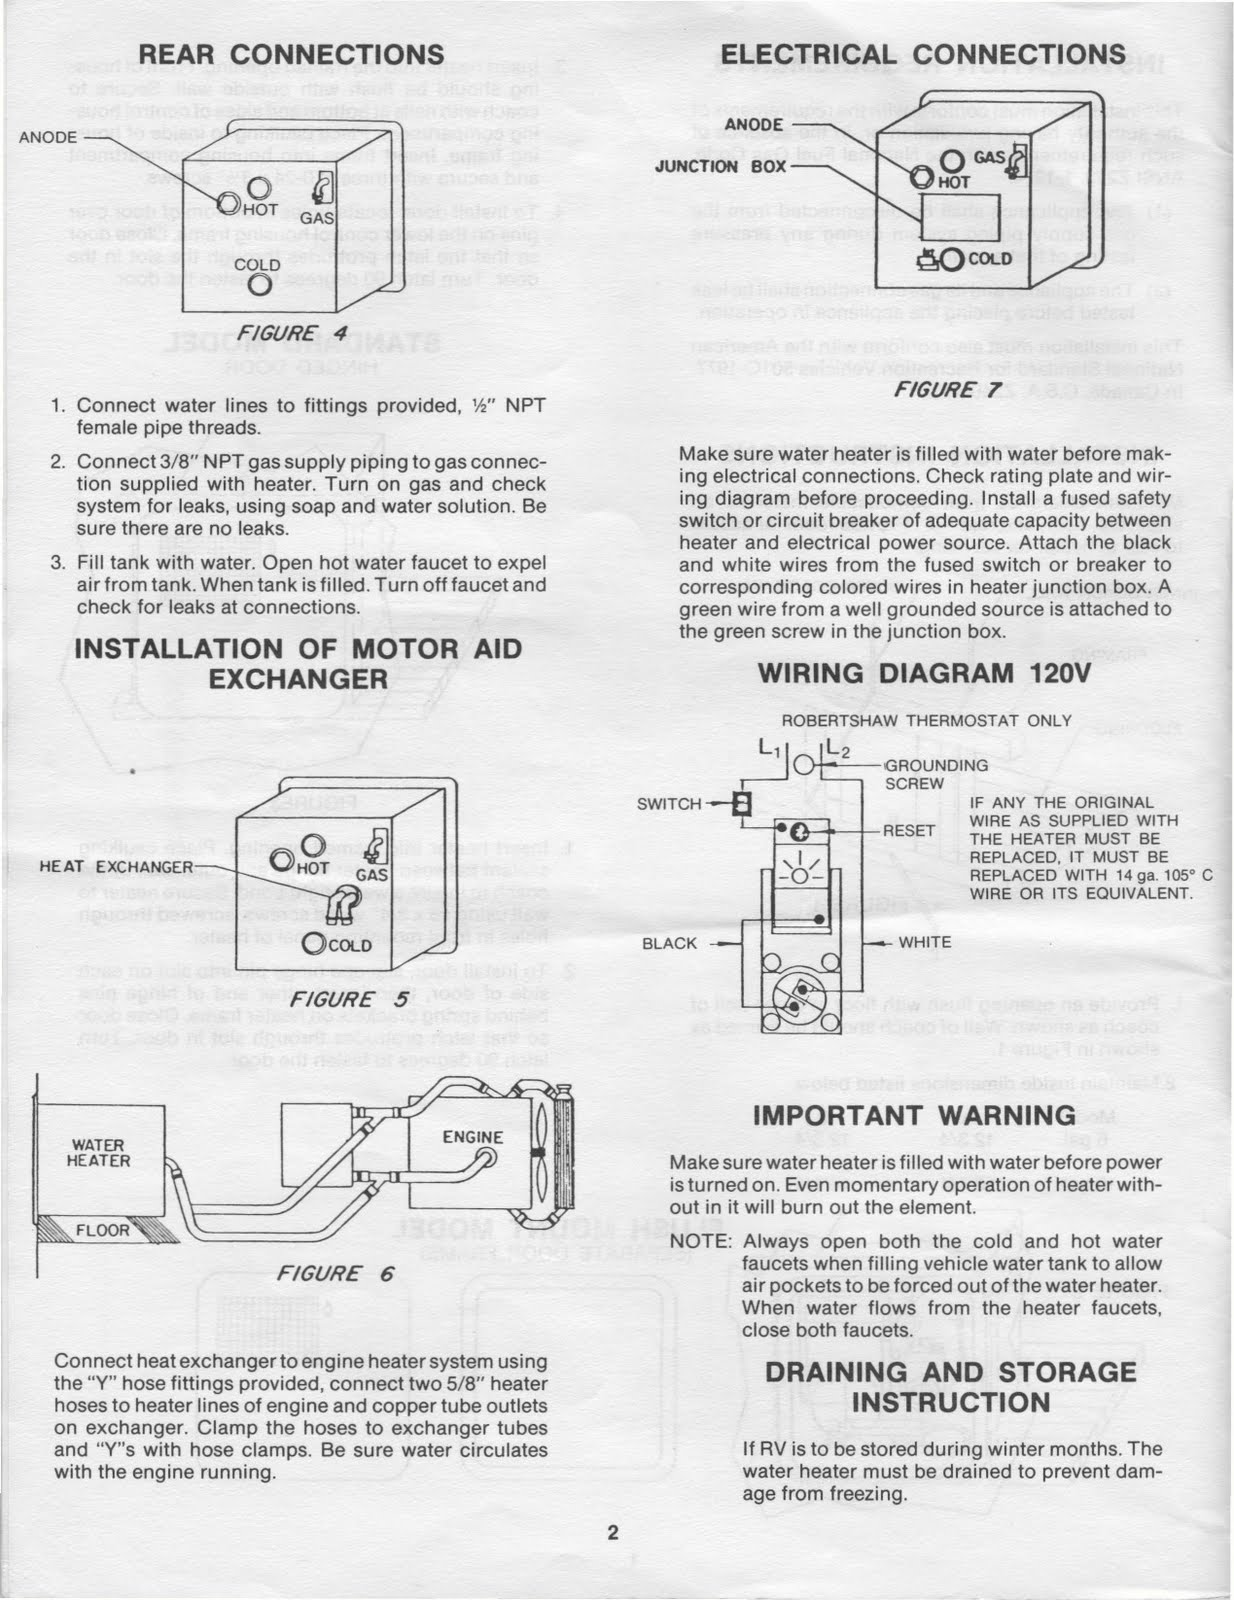 medium resolution of 1848 wiring diagram for 79 dodge motorhome 1976 dodge motorhome rh diagram stockimages us